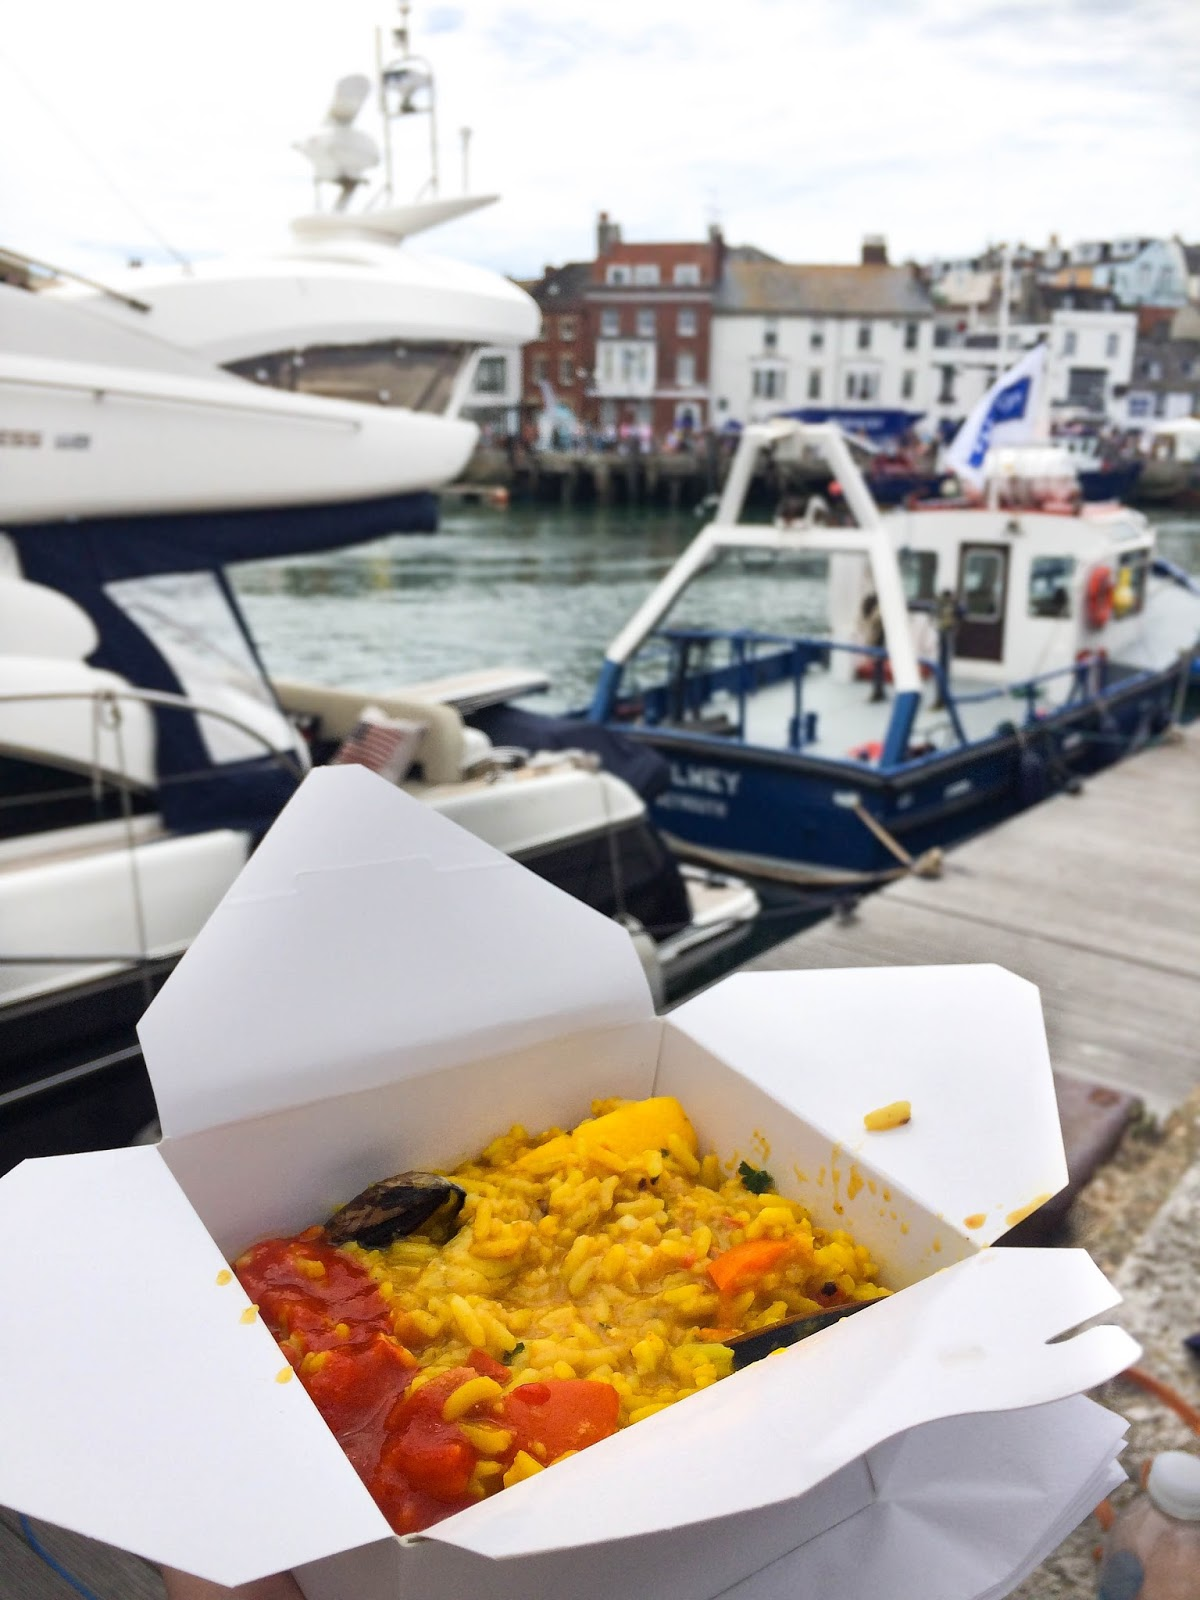 Pommery Dorset Seafood Festival in Weymouth, paella, street food, food bloggers, lifestyle bloggers